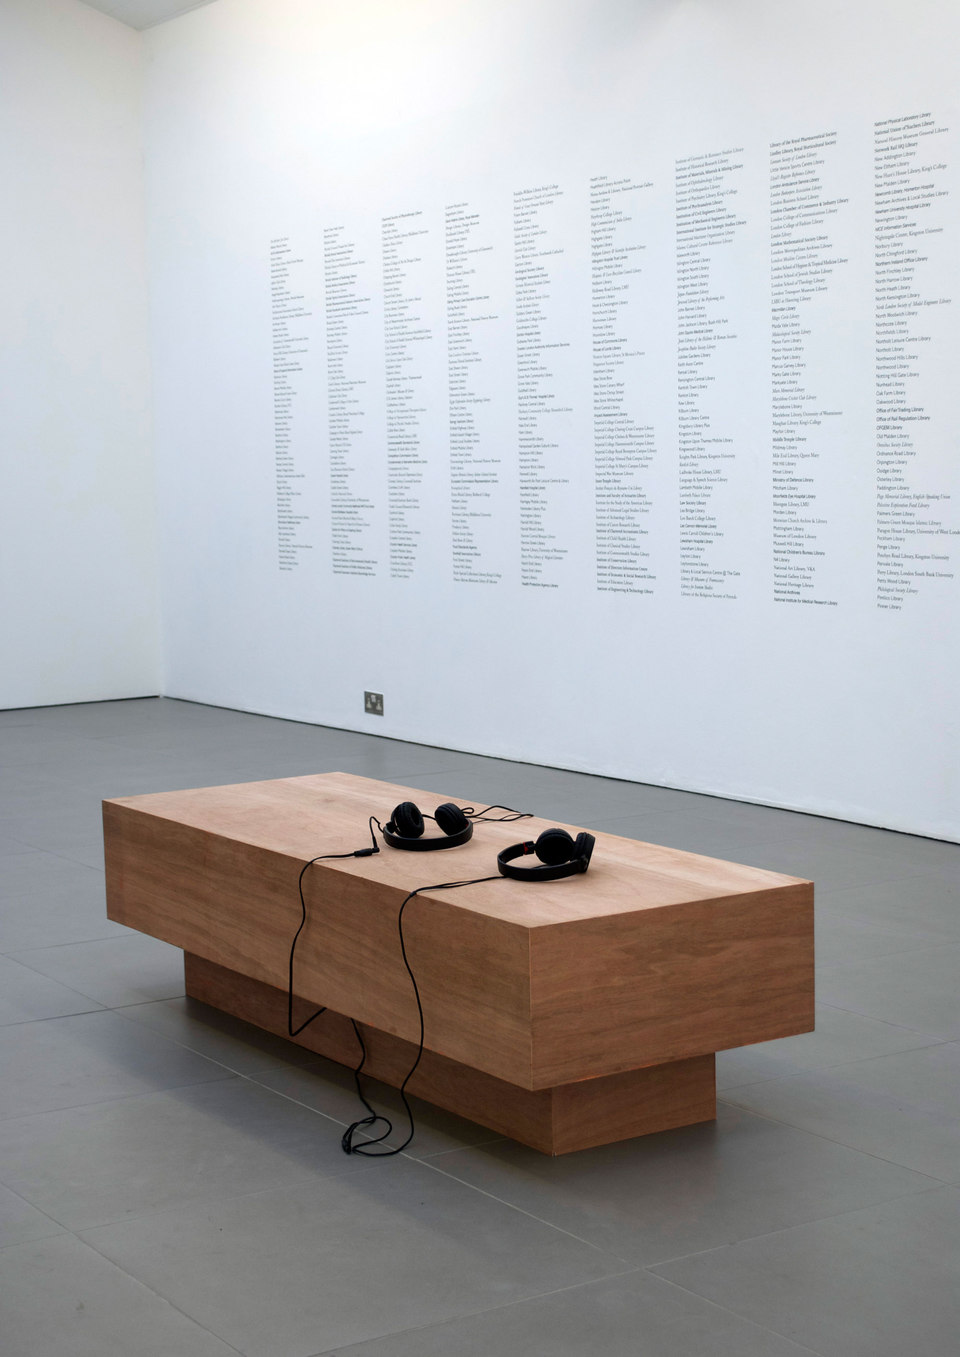 Ruth Beale, Now from Now, 2011, plywood, foam, fabric, headphones, audio on mp3, duration 9 min., library books from a selection of public libraries in london (58 x 160 cm), Cell Project Space